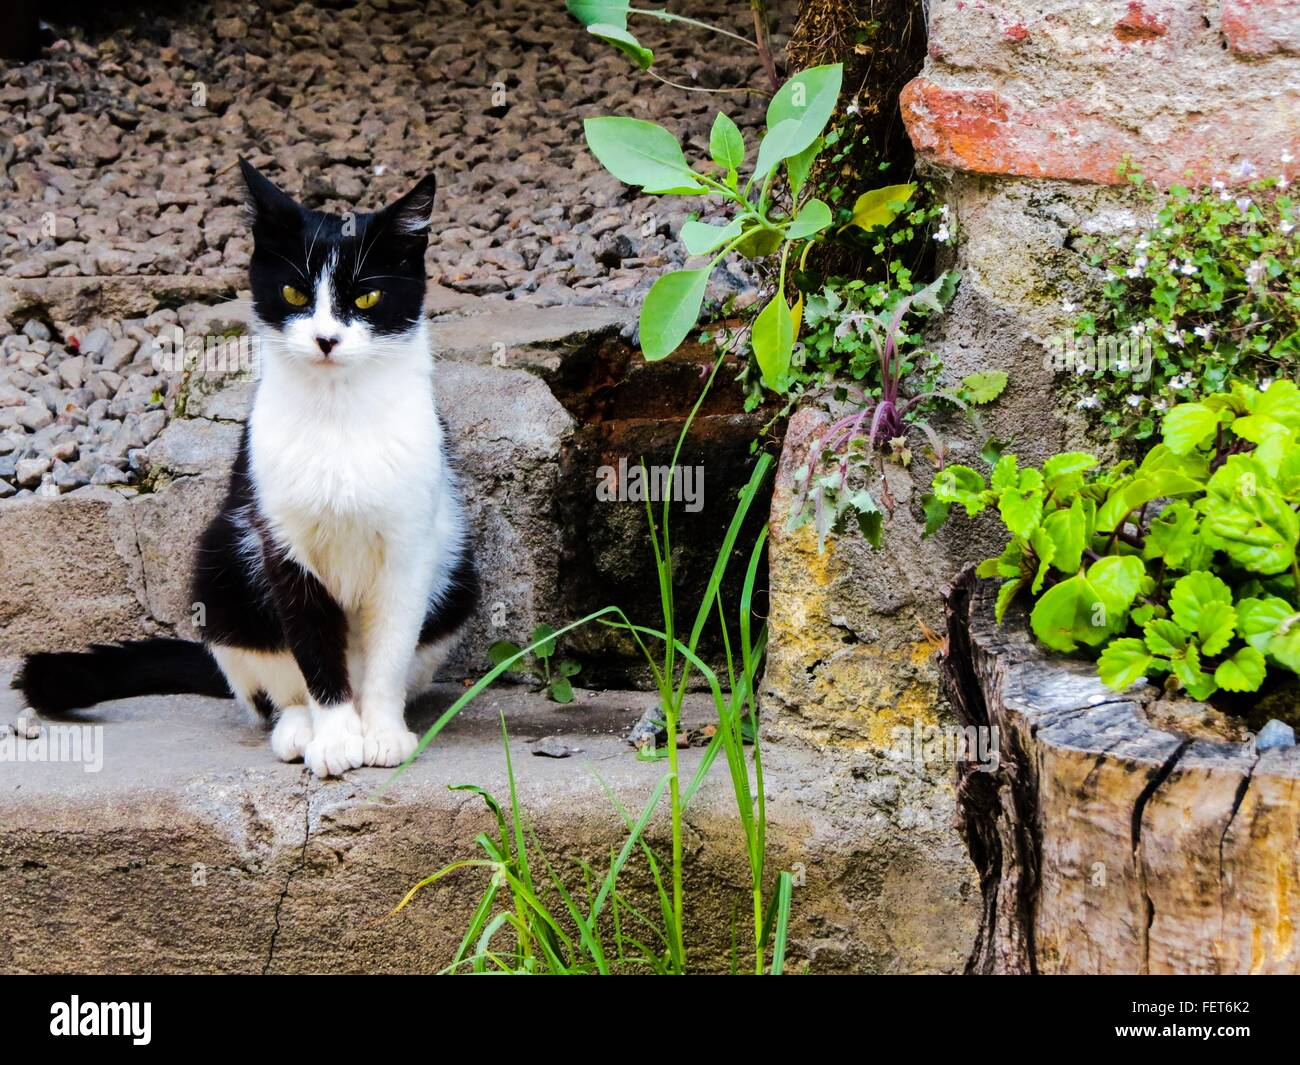 Portrait Of Angry Cat Sitting By Building - Stock Image